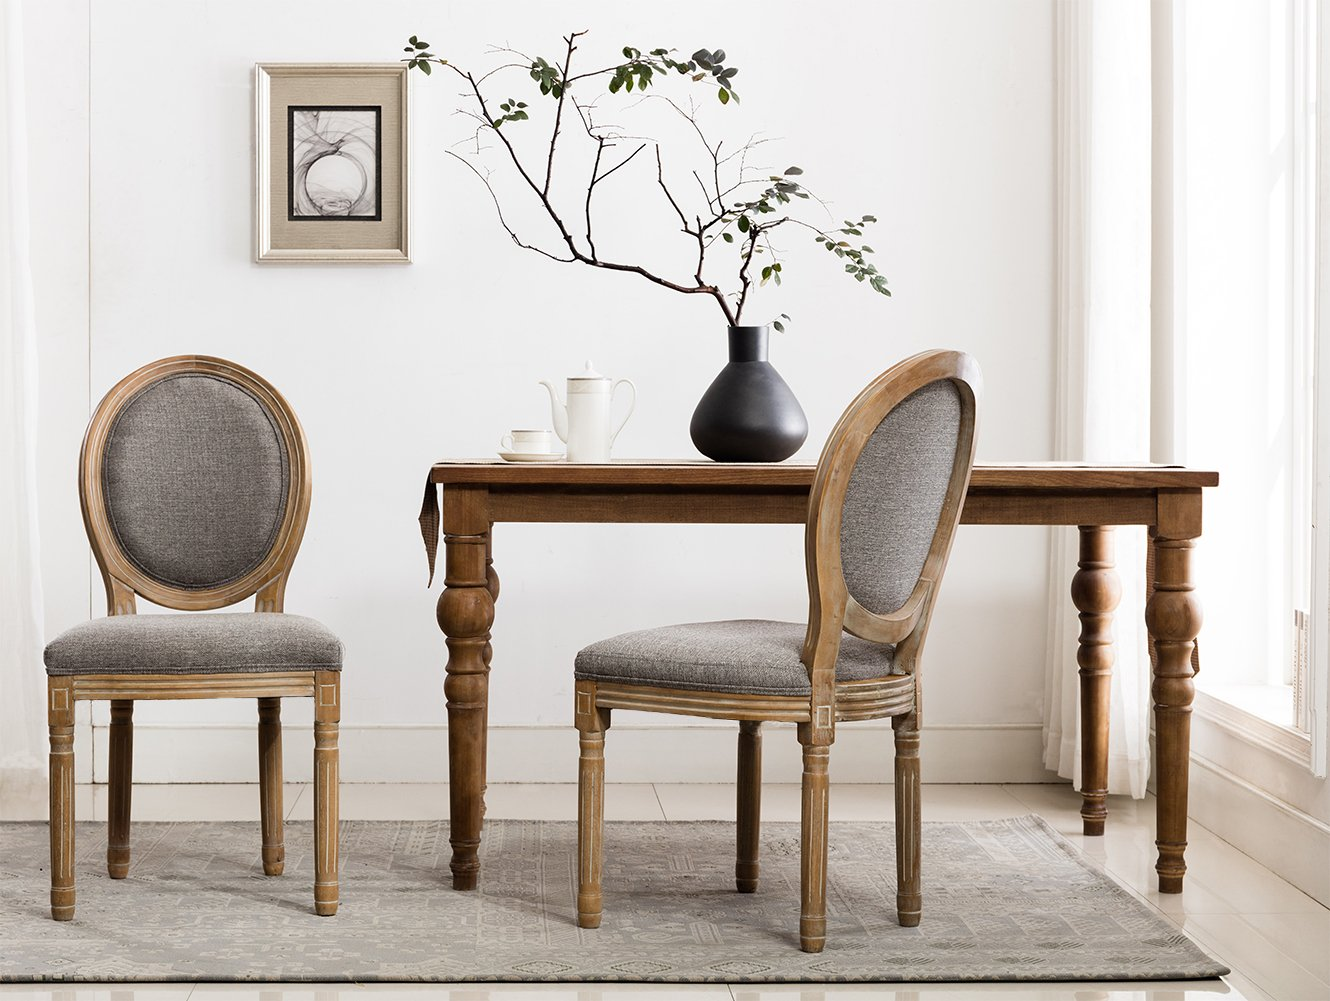 Rustic Farmhouse Dining Room Chairs French Distressed Elegant Tufted Kitchen With Carving Wood Legs Round Back For Dinning